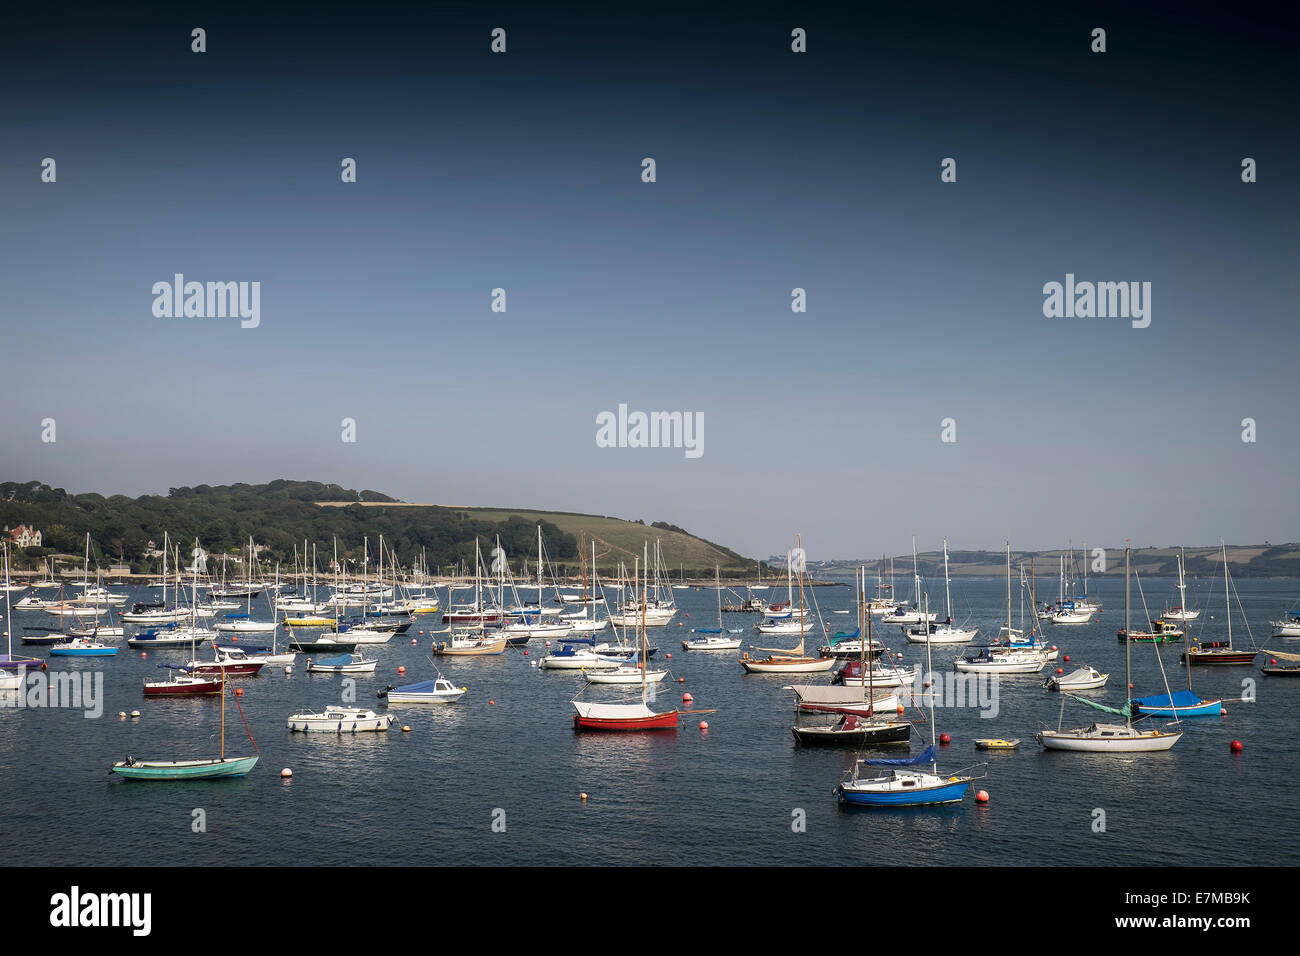 Boats moored in Carrick Roads in Falmouth. - Stock Image